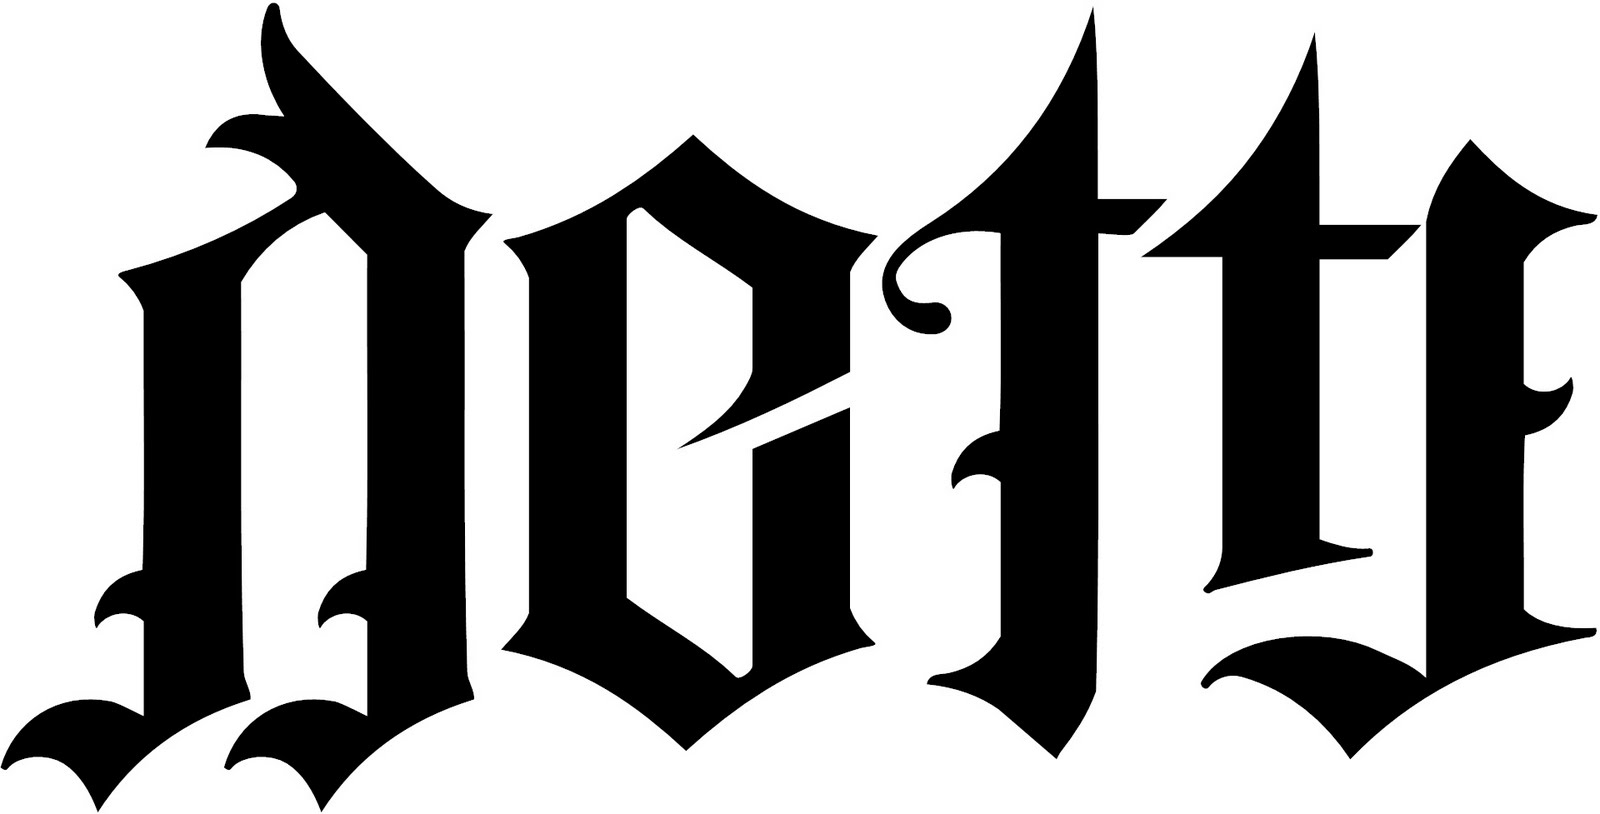 45 ambigram tattoos designs meanings for men women for Tattoos that say something different upside down